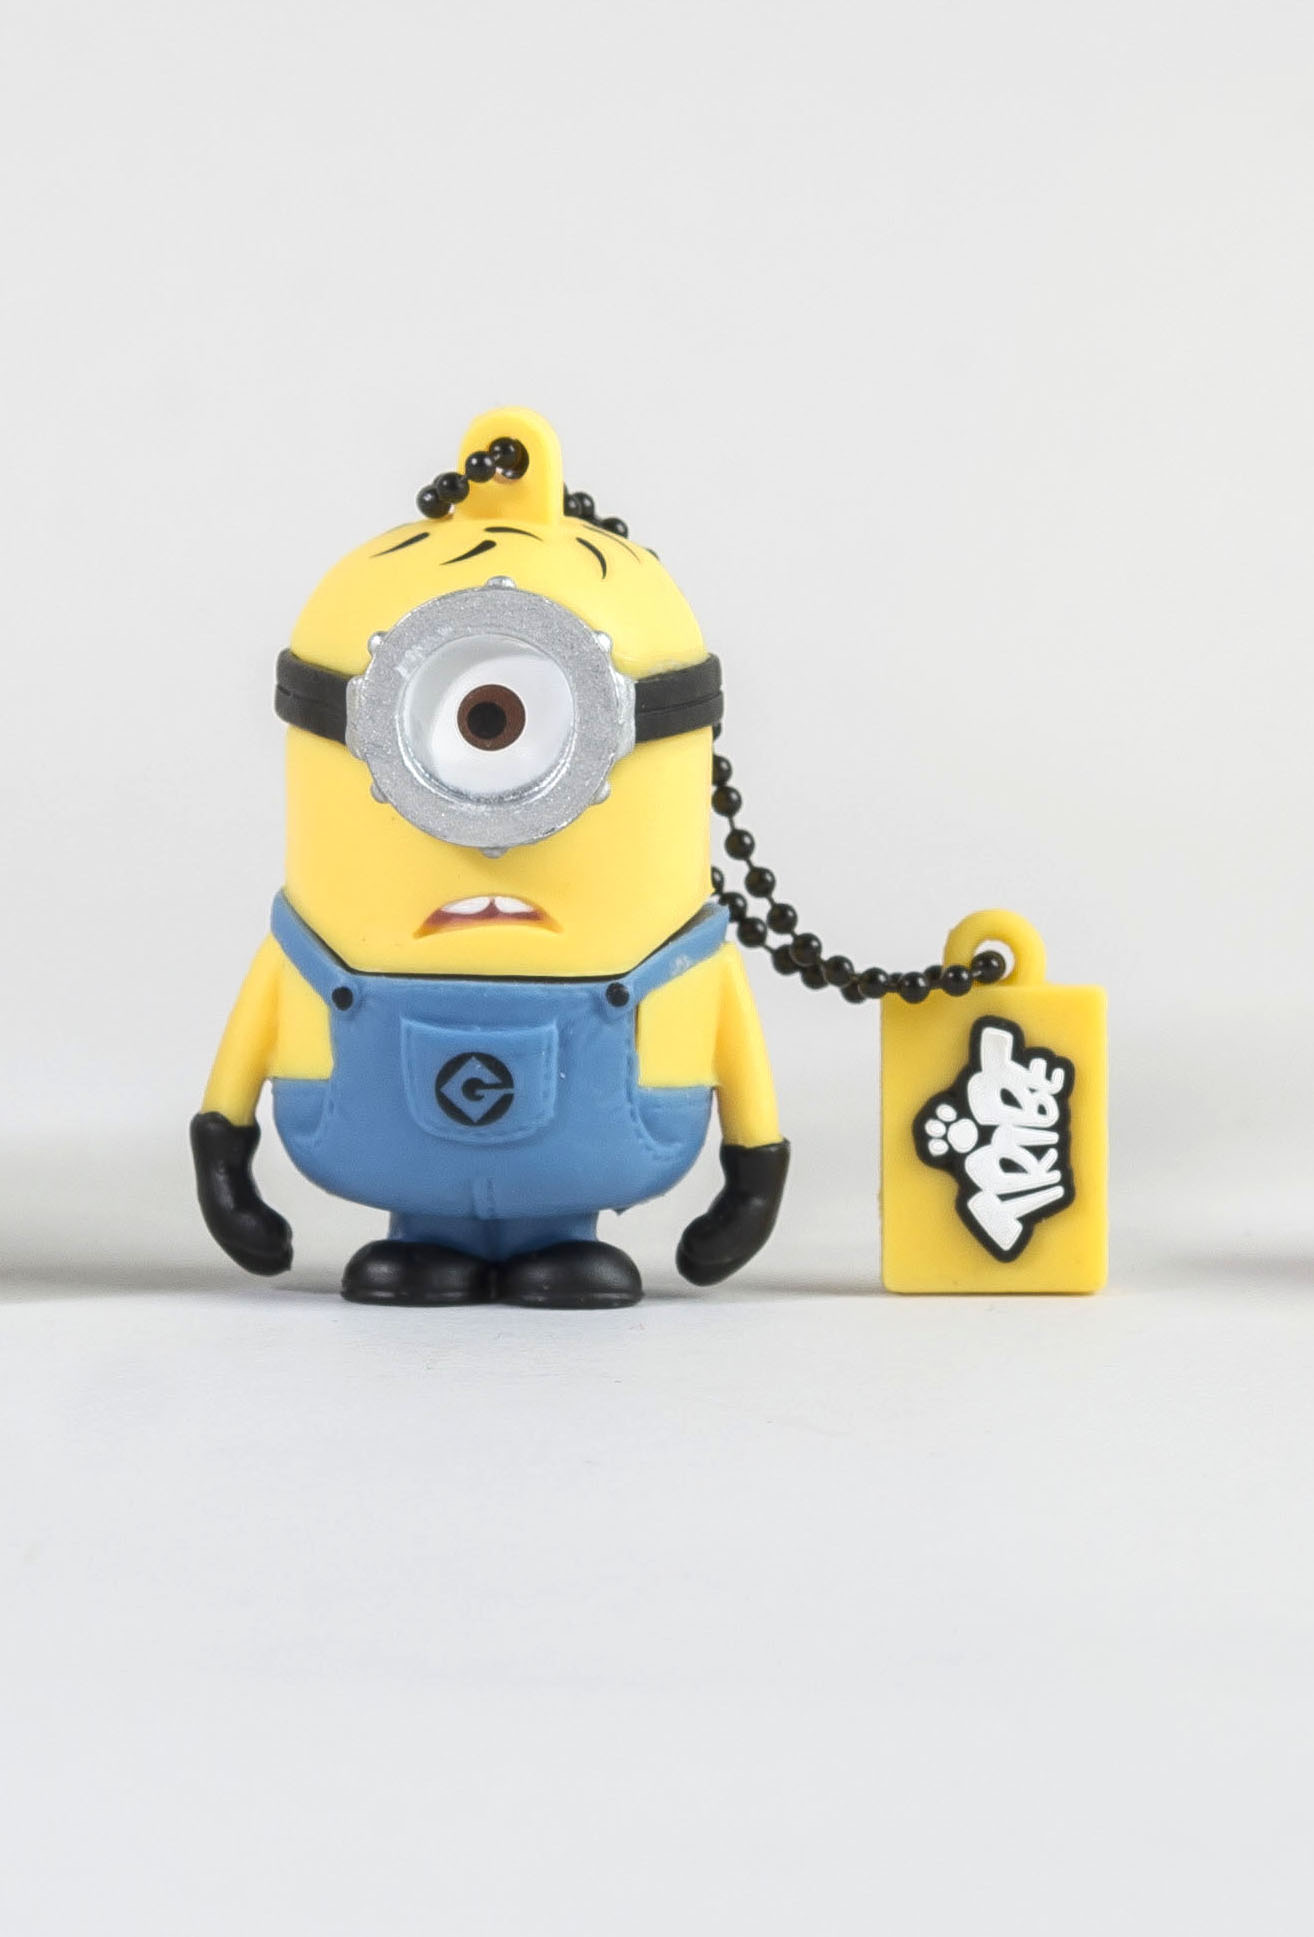 cl usb minion carl 8 go super insolite. Black Bedroom Furniture Sets. Home Design Ideas